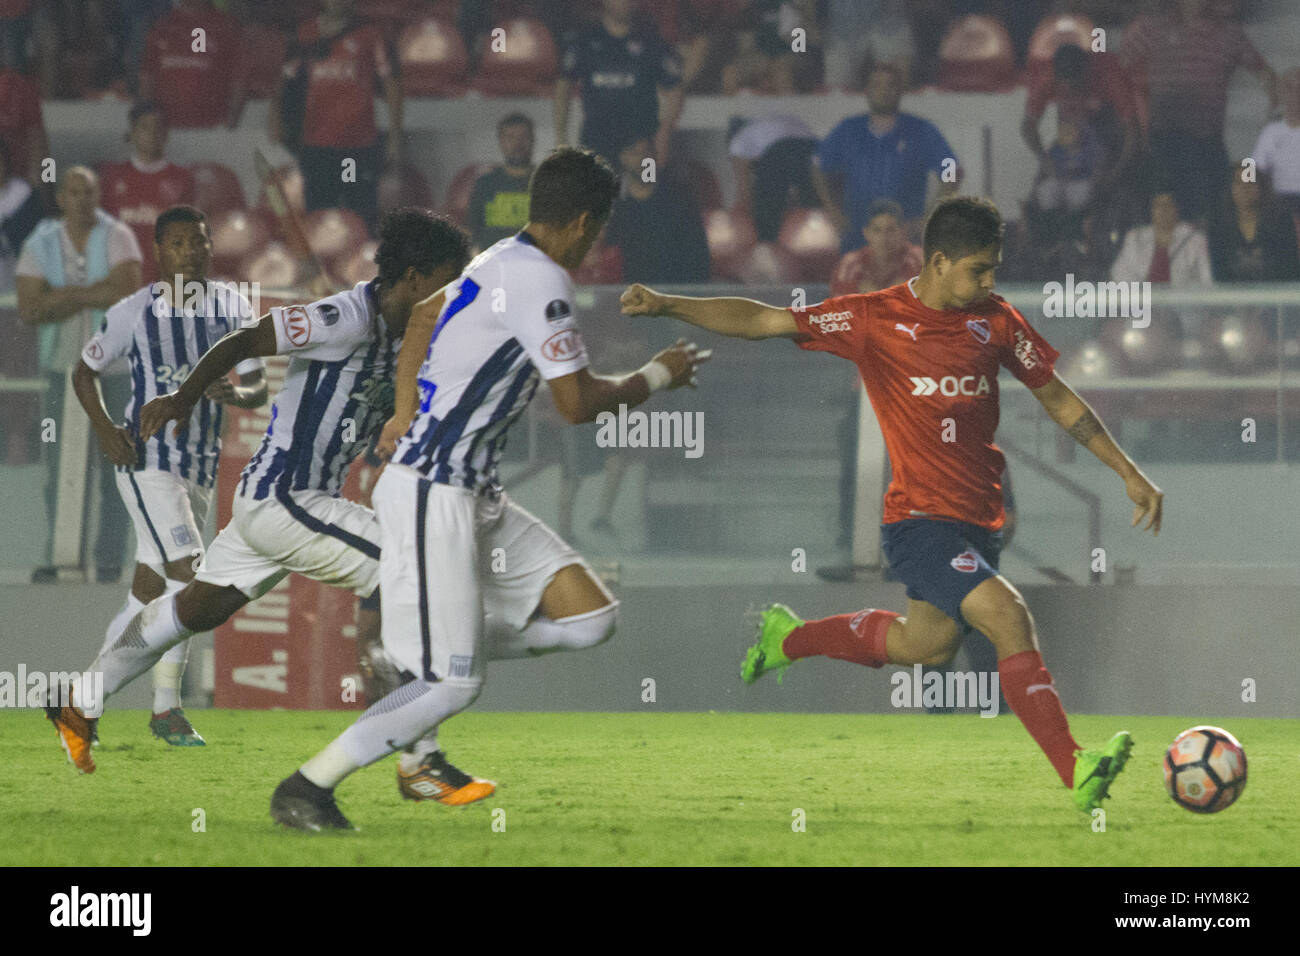 BUENOS AIRES, 04.04.2017:  Martin Benitez, forward of Independiente during match between Independiente (ARG) and - Stock Image